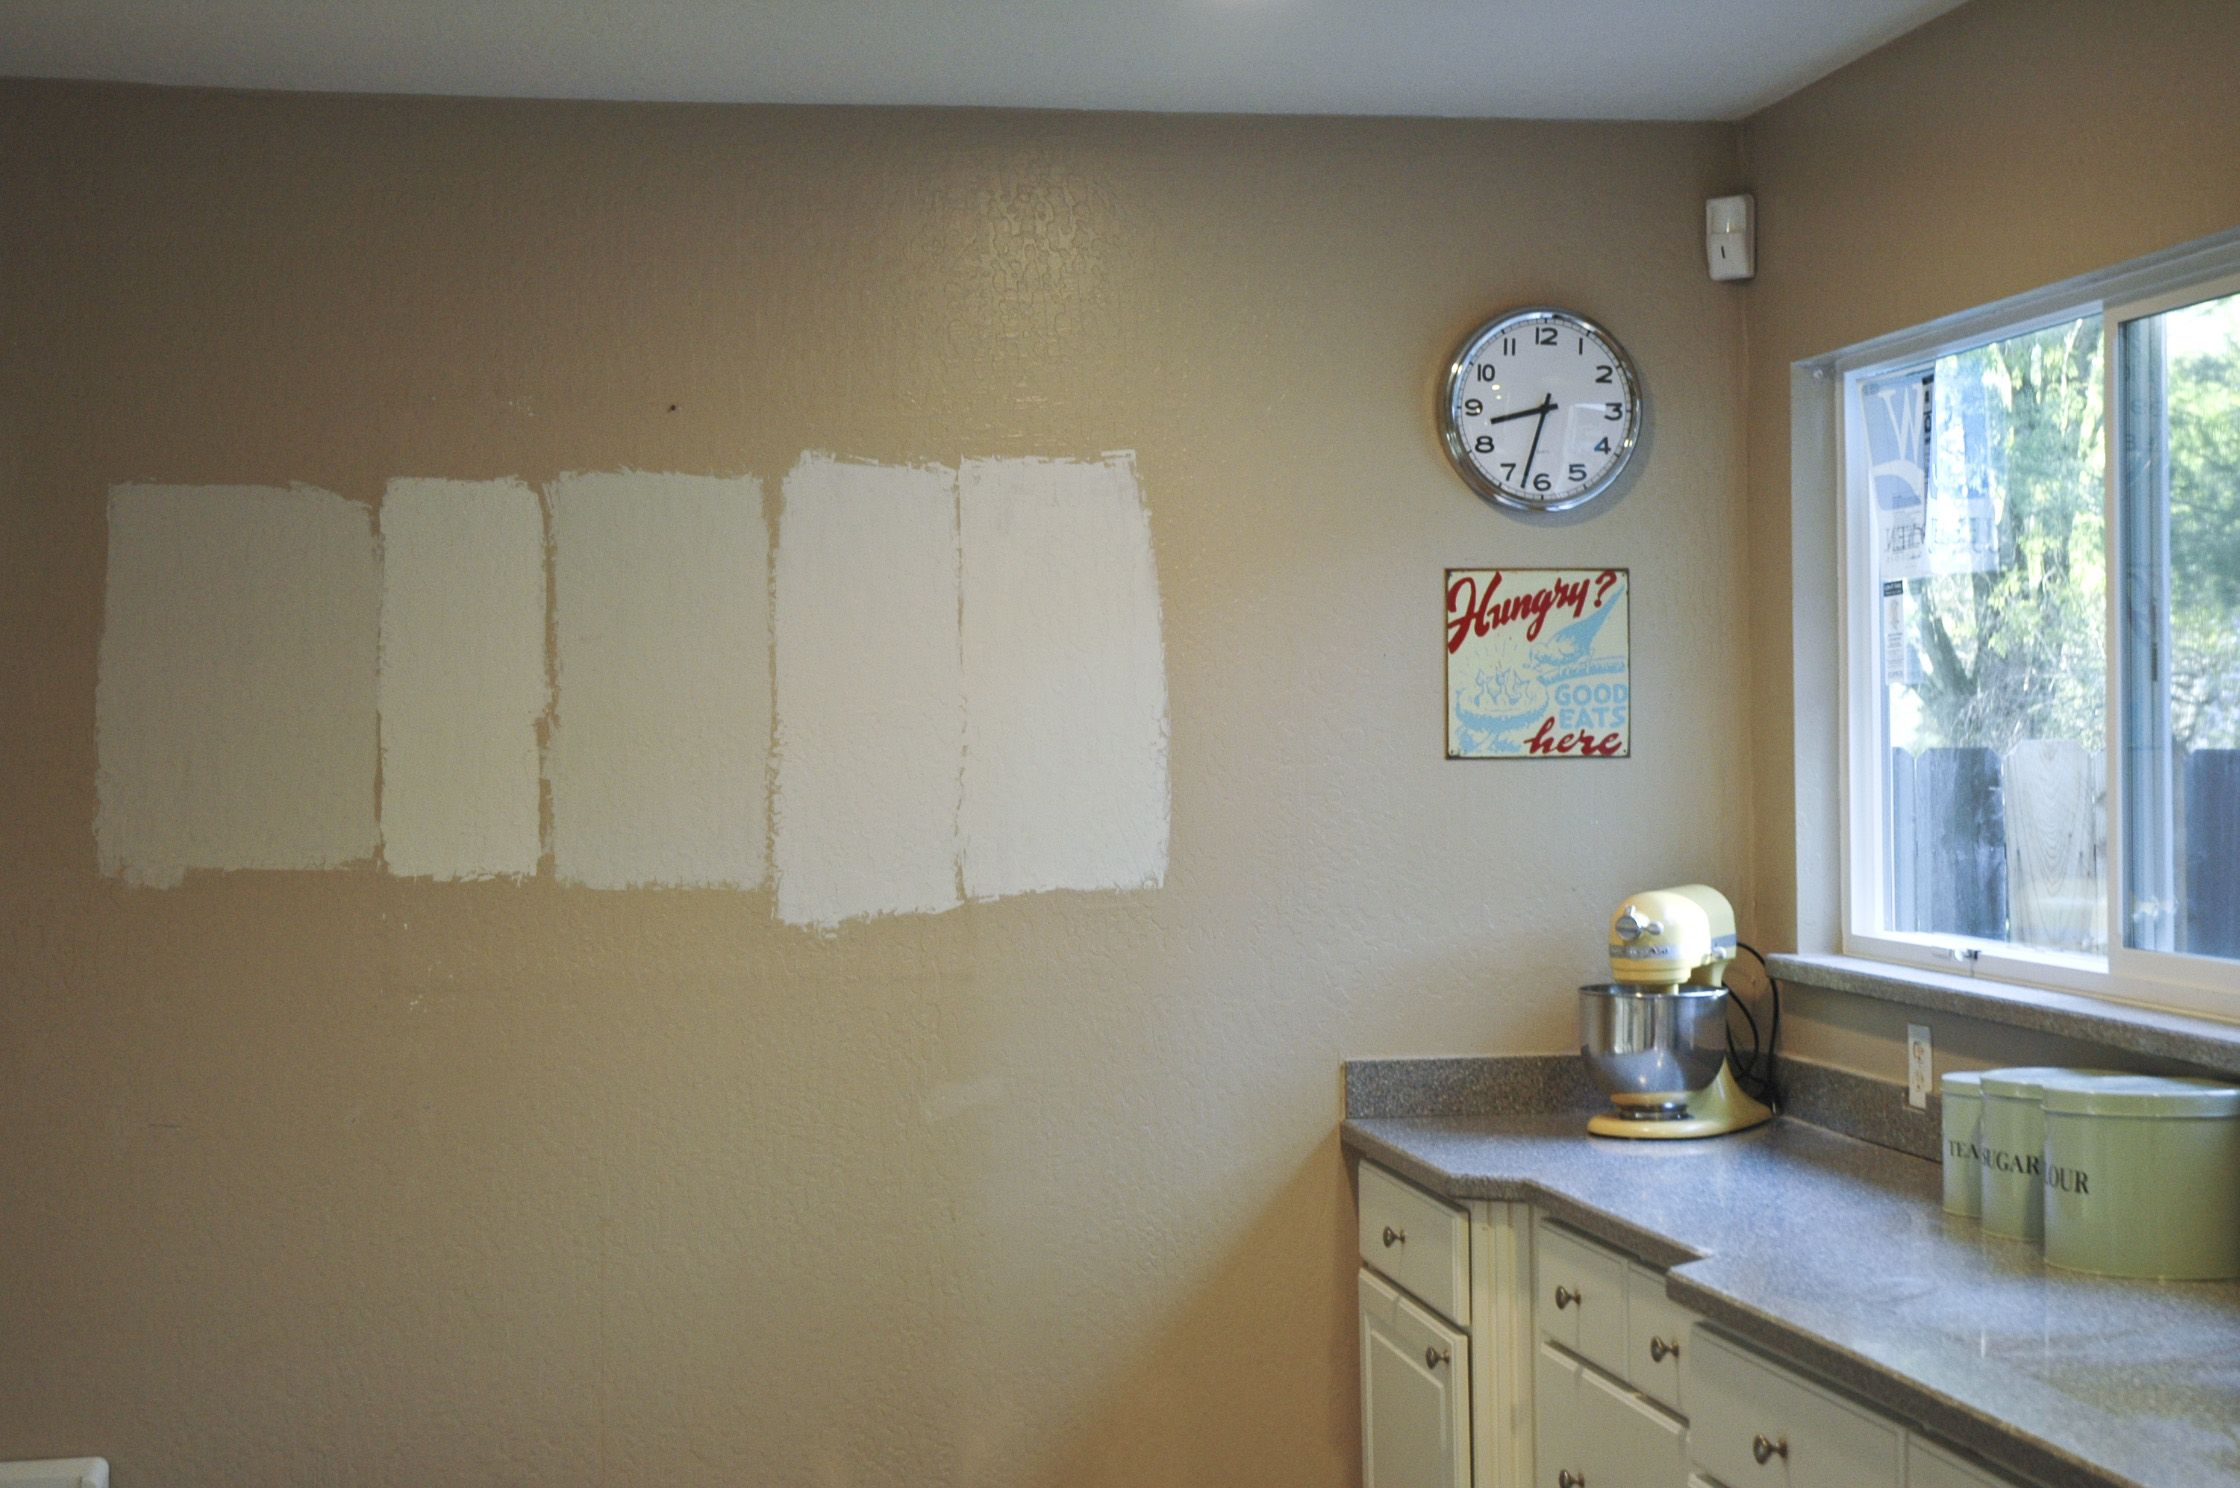 Best White Paint For Walls perfect greige - benjamin moore silver satin, balboa mist | home